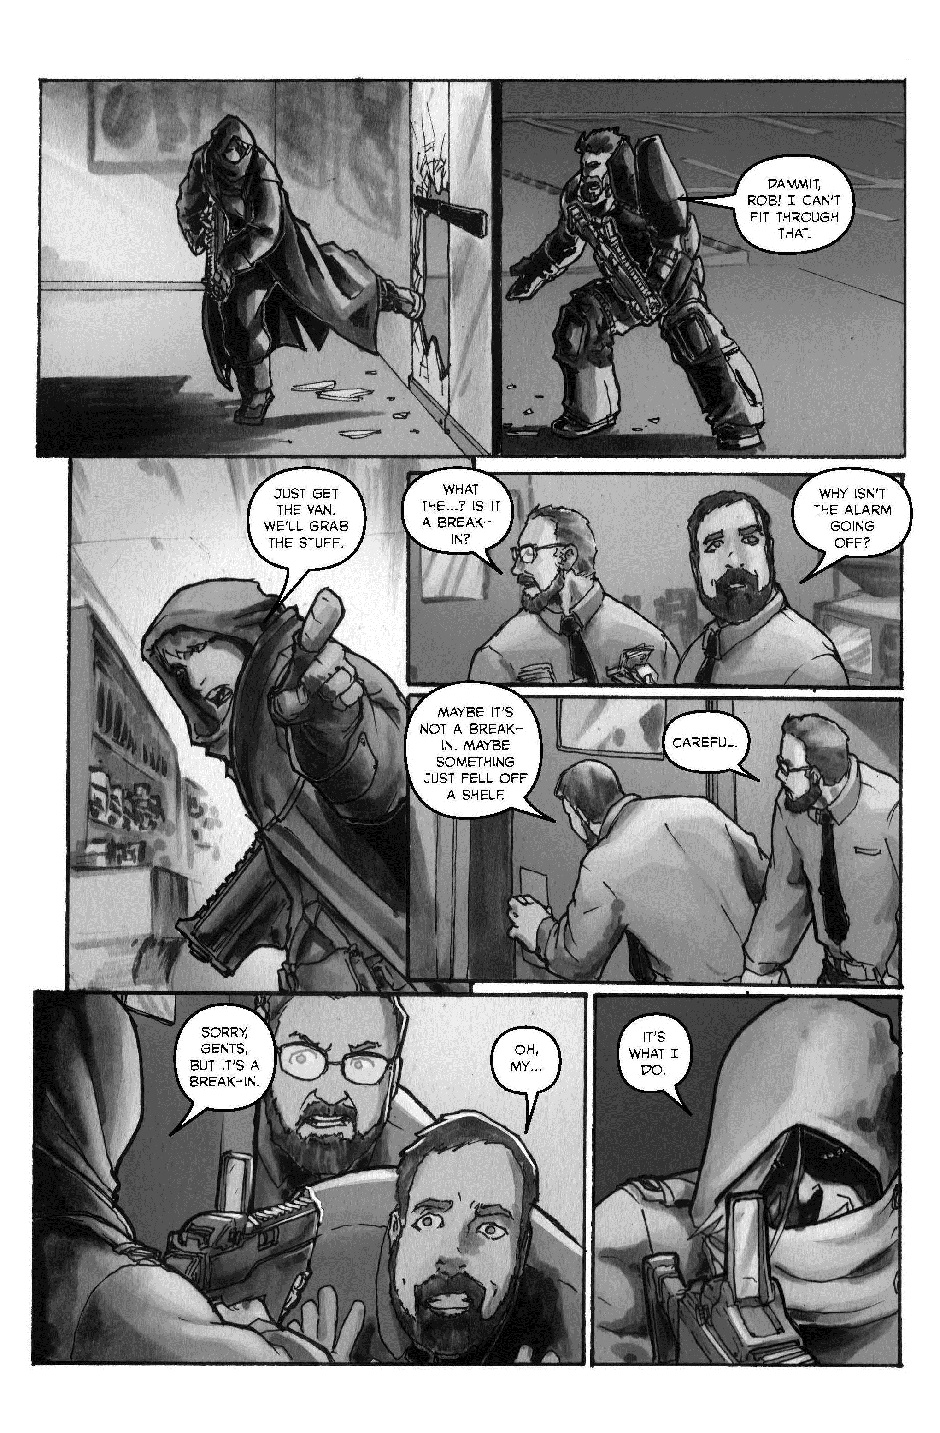 ROBIN HOOD: OUTLAW OF THE 21ST CENTURY PG. 21